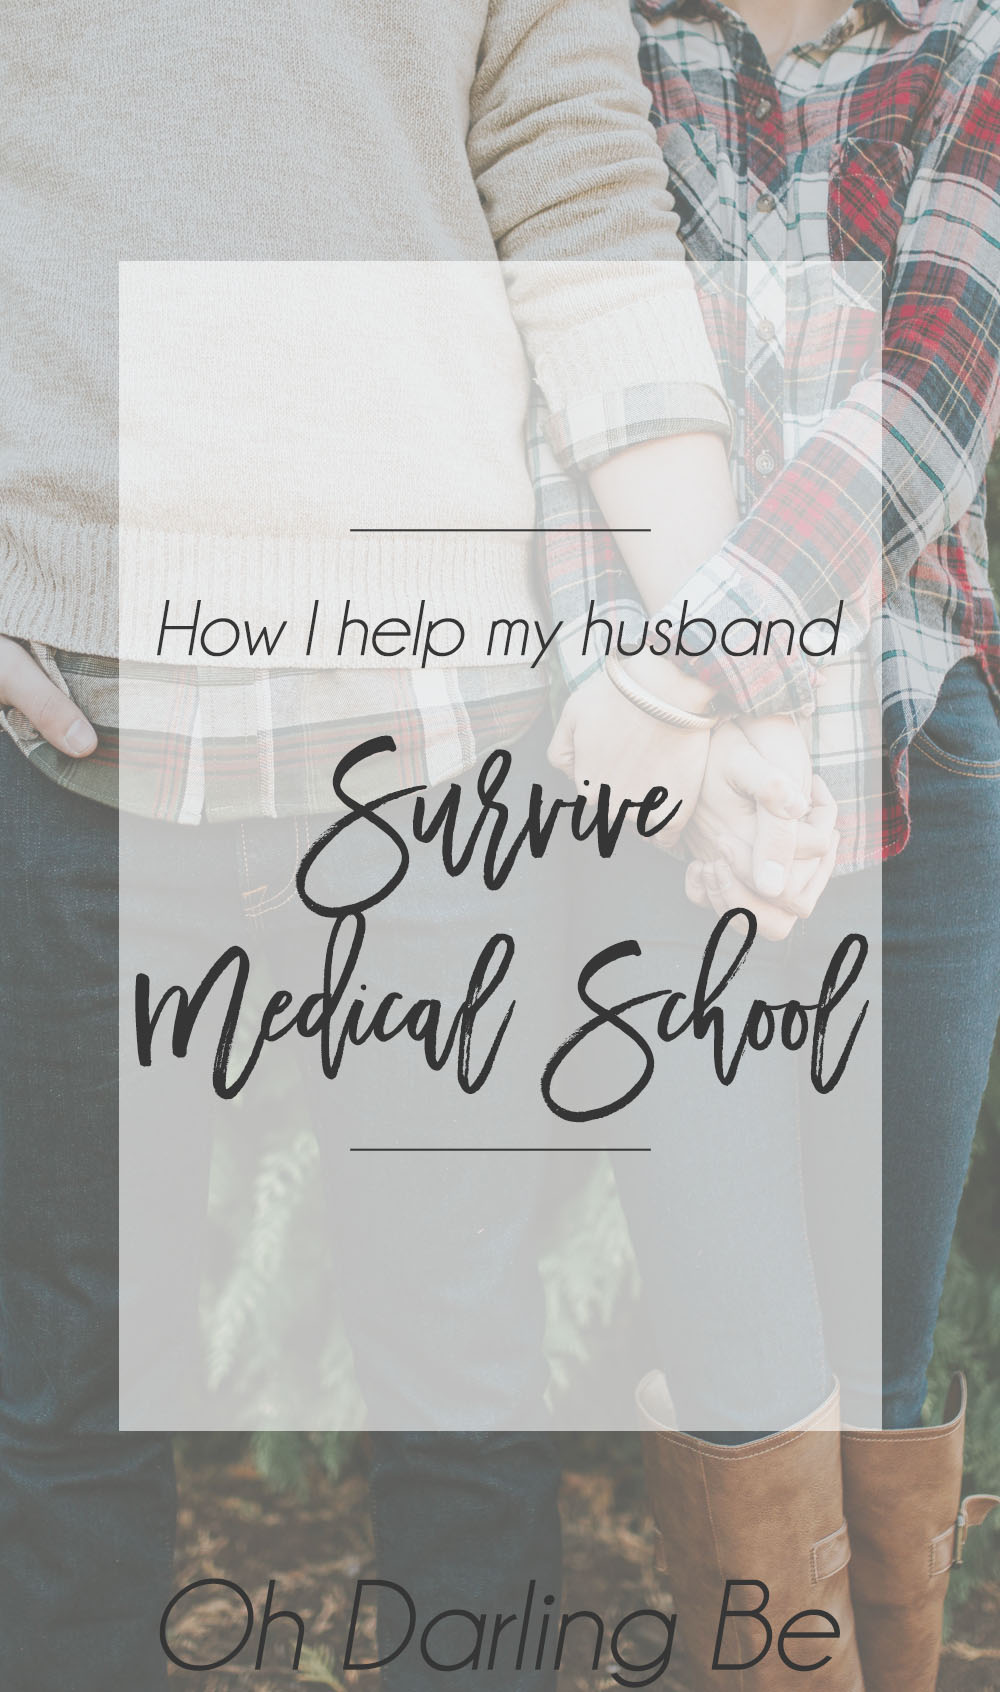 How I help my husband survive medical school